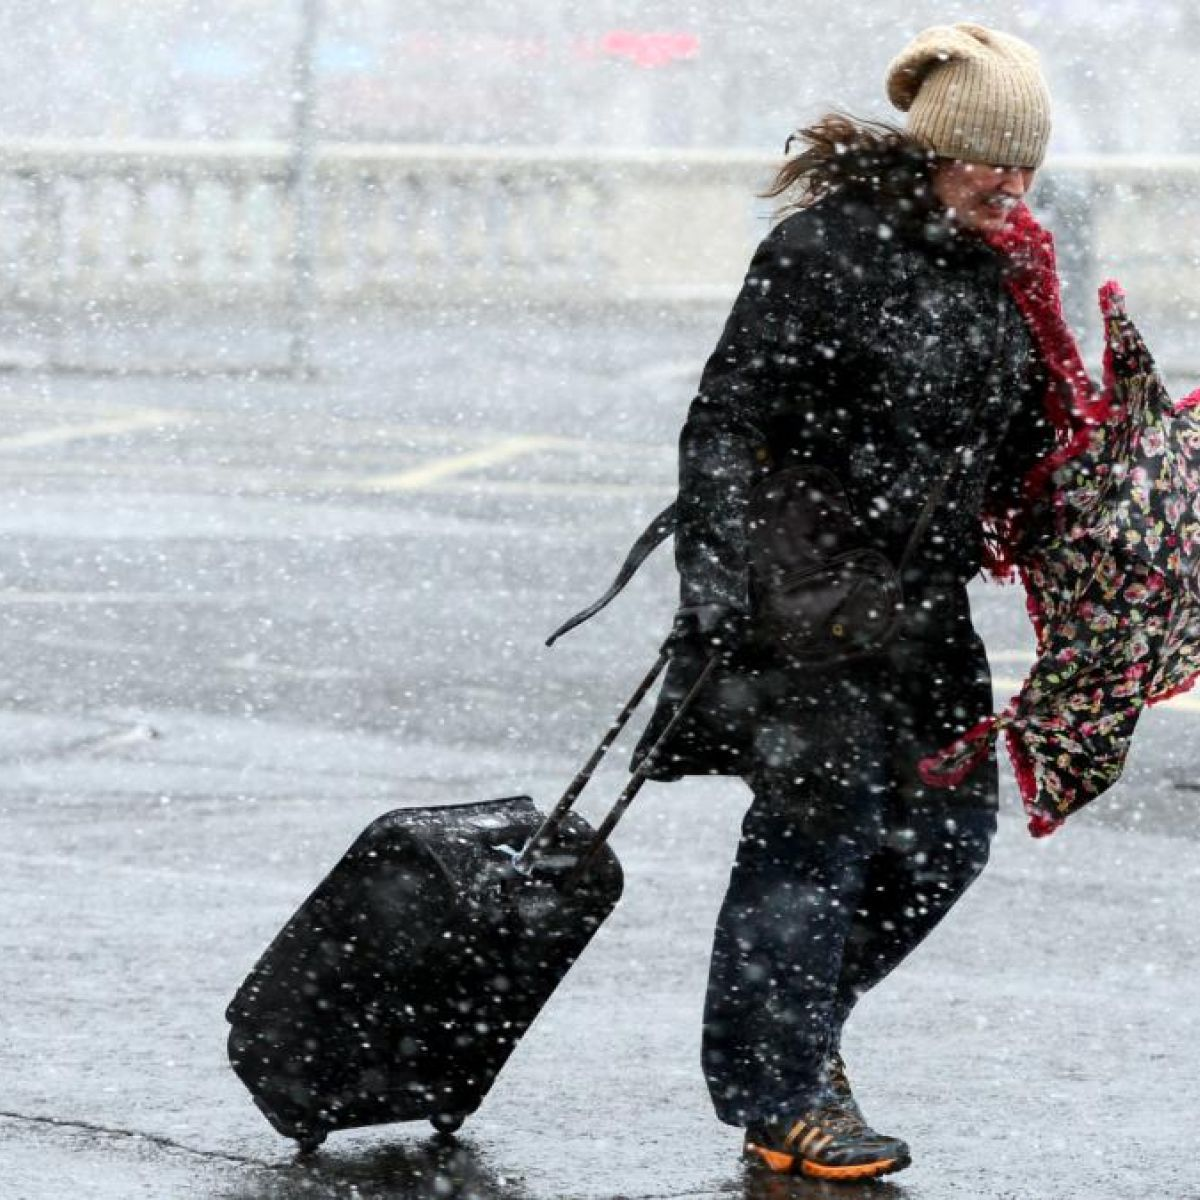 Wintry conditions with frost and ice forecast for weekend